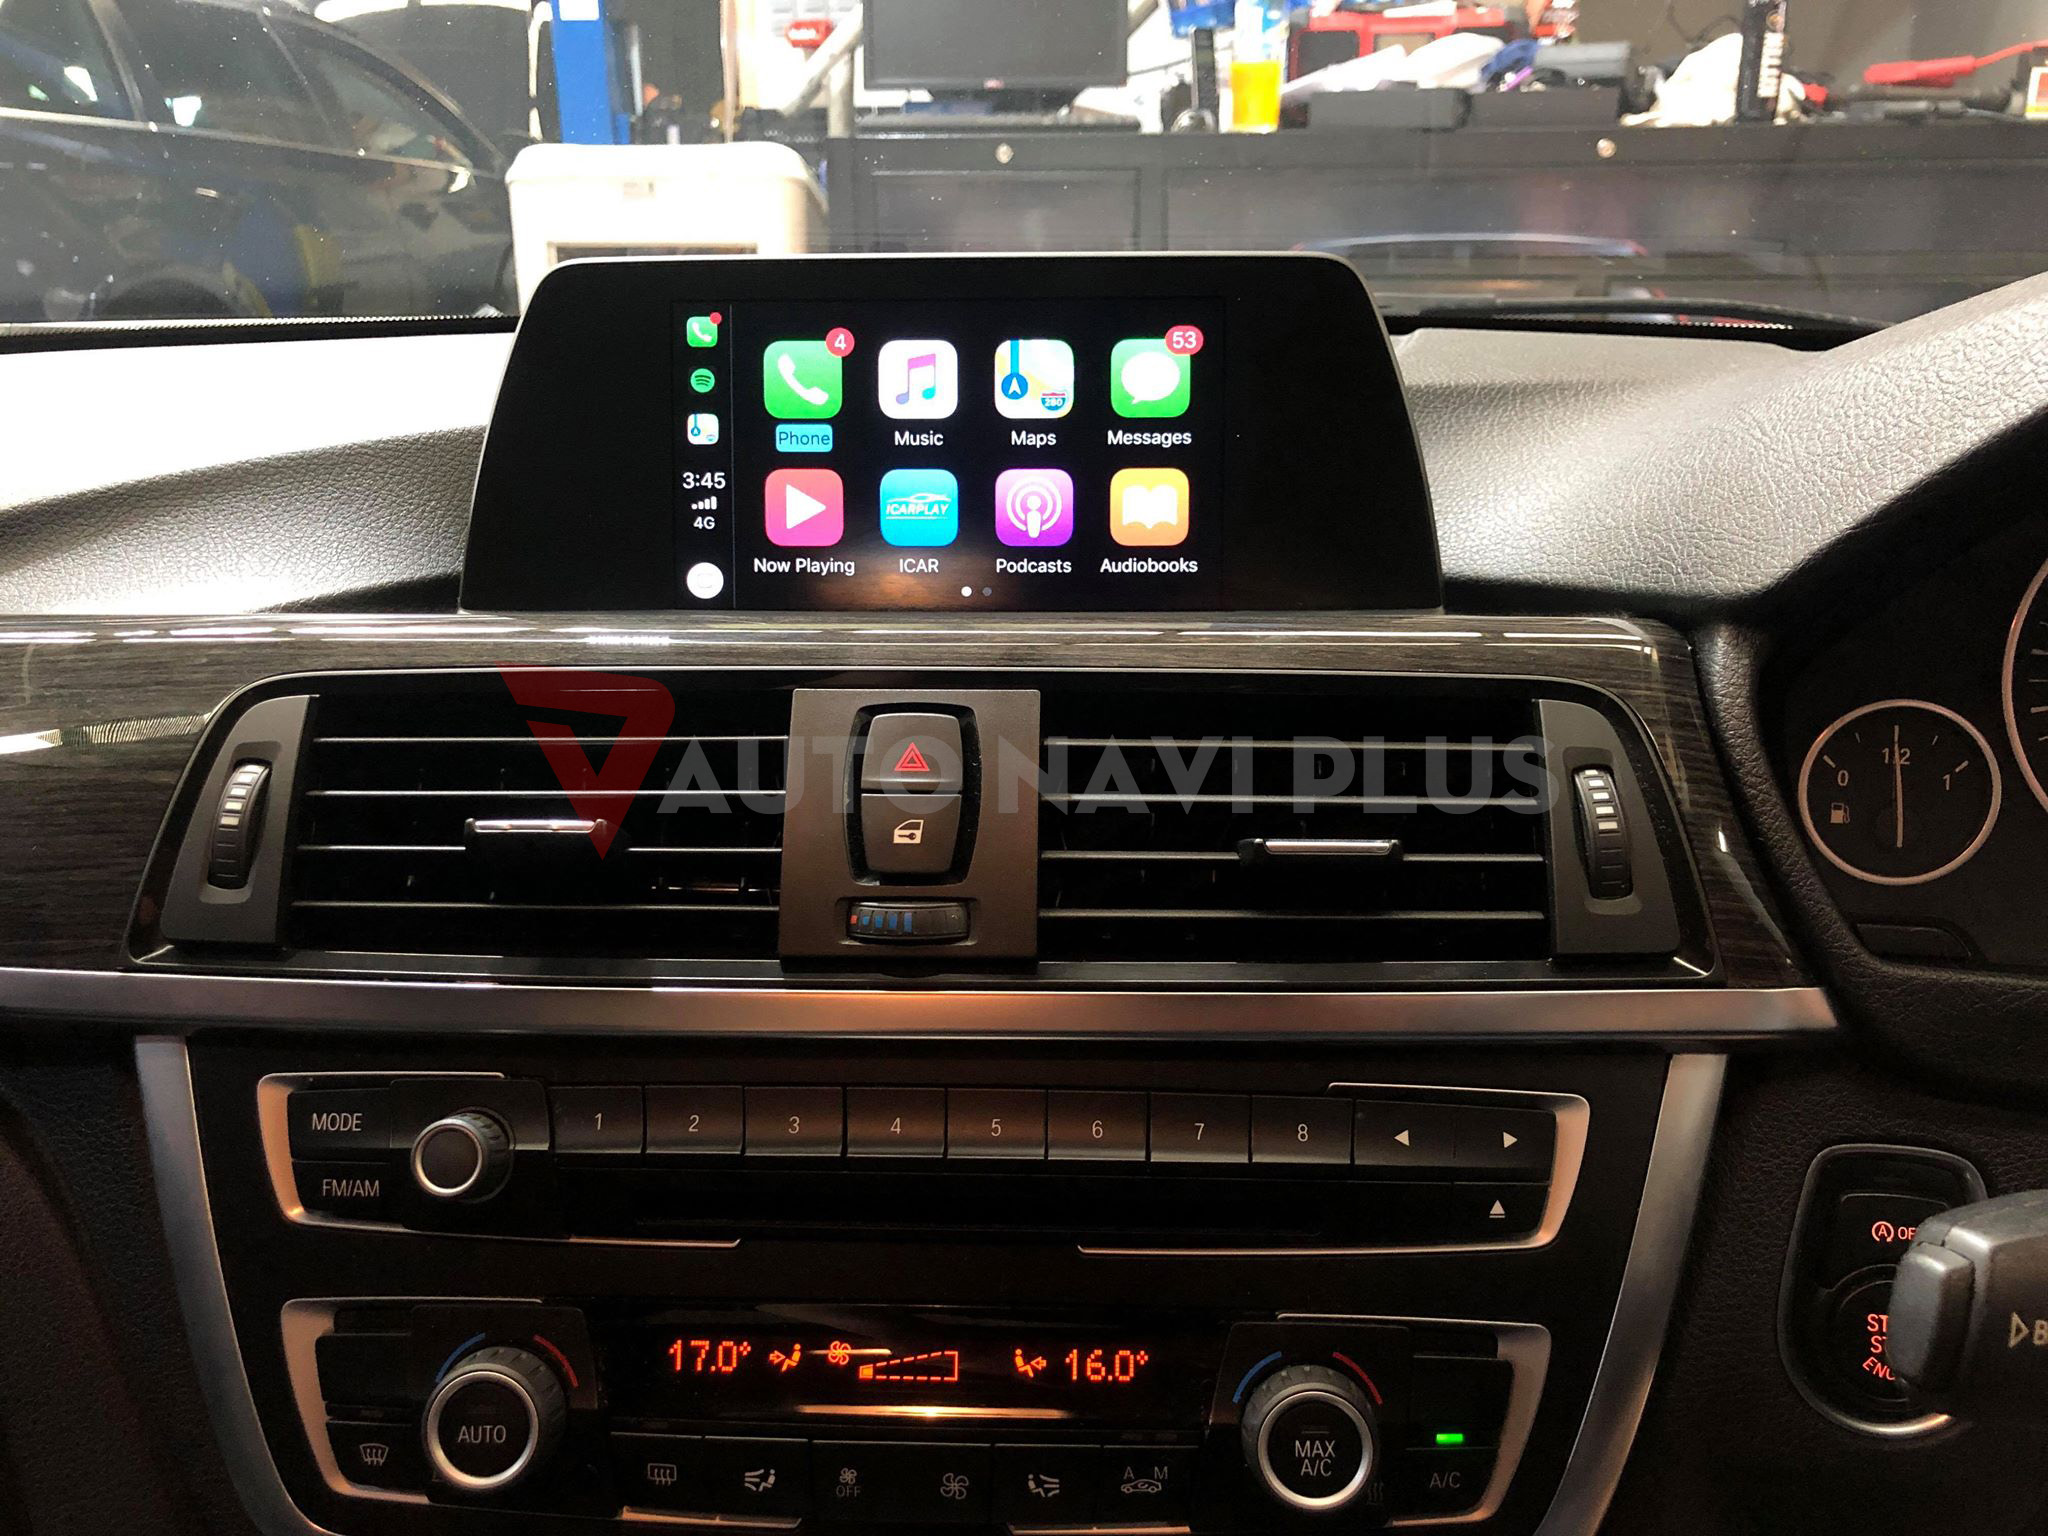 Bmw 3 Series Retrofit Apple Carplay And Android Auto Car Spares Auto Parts Aftermarket Car Parts